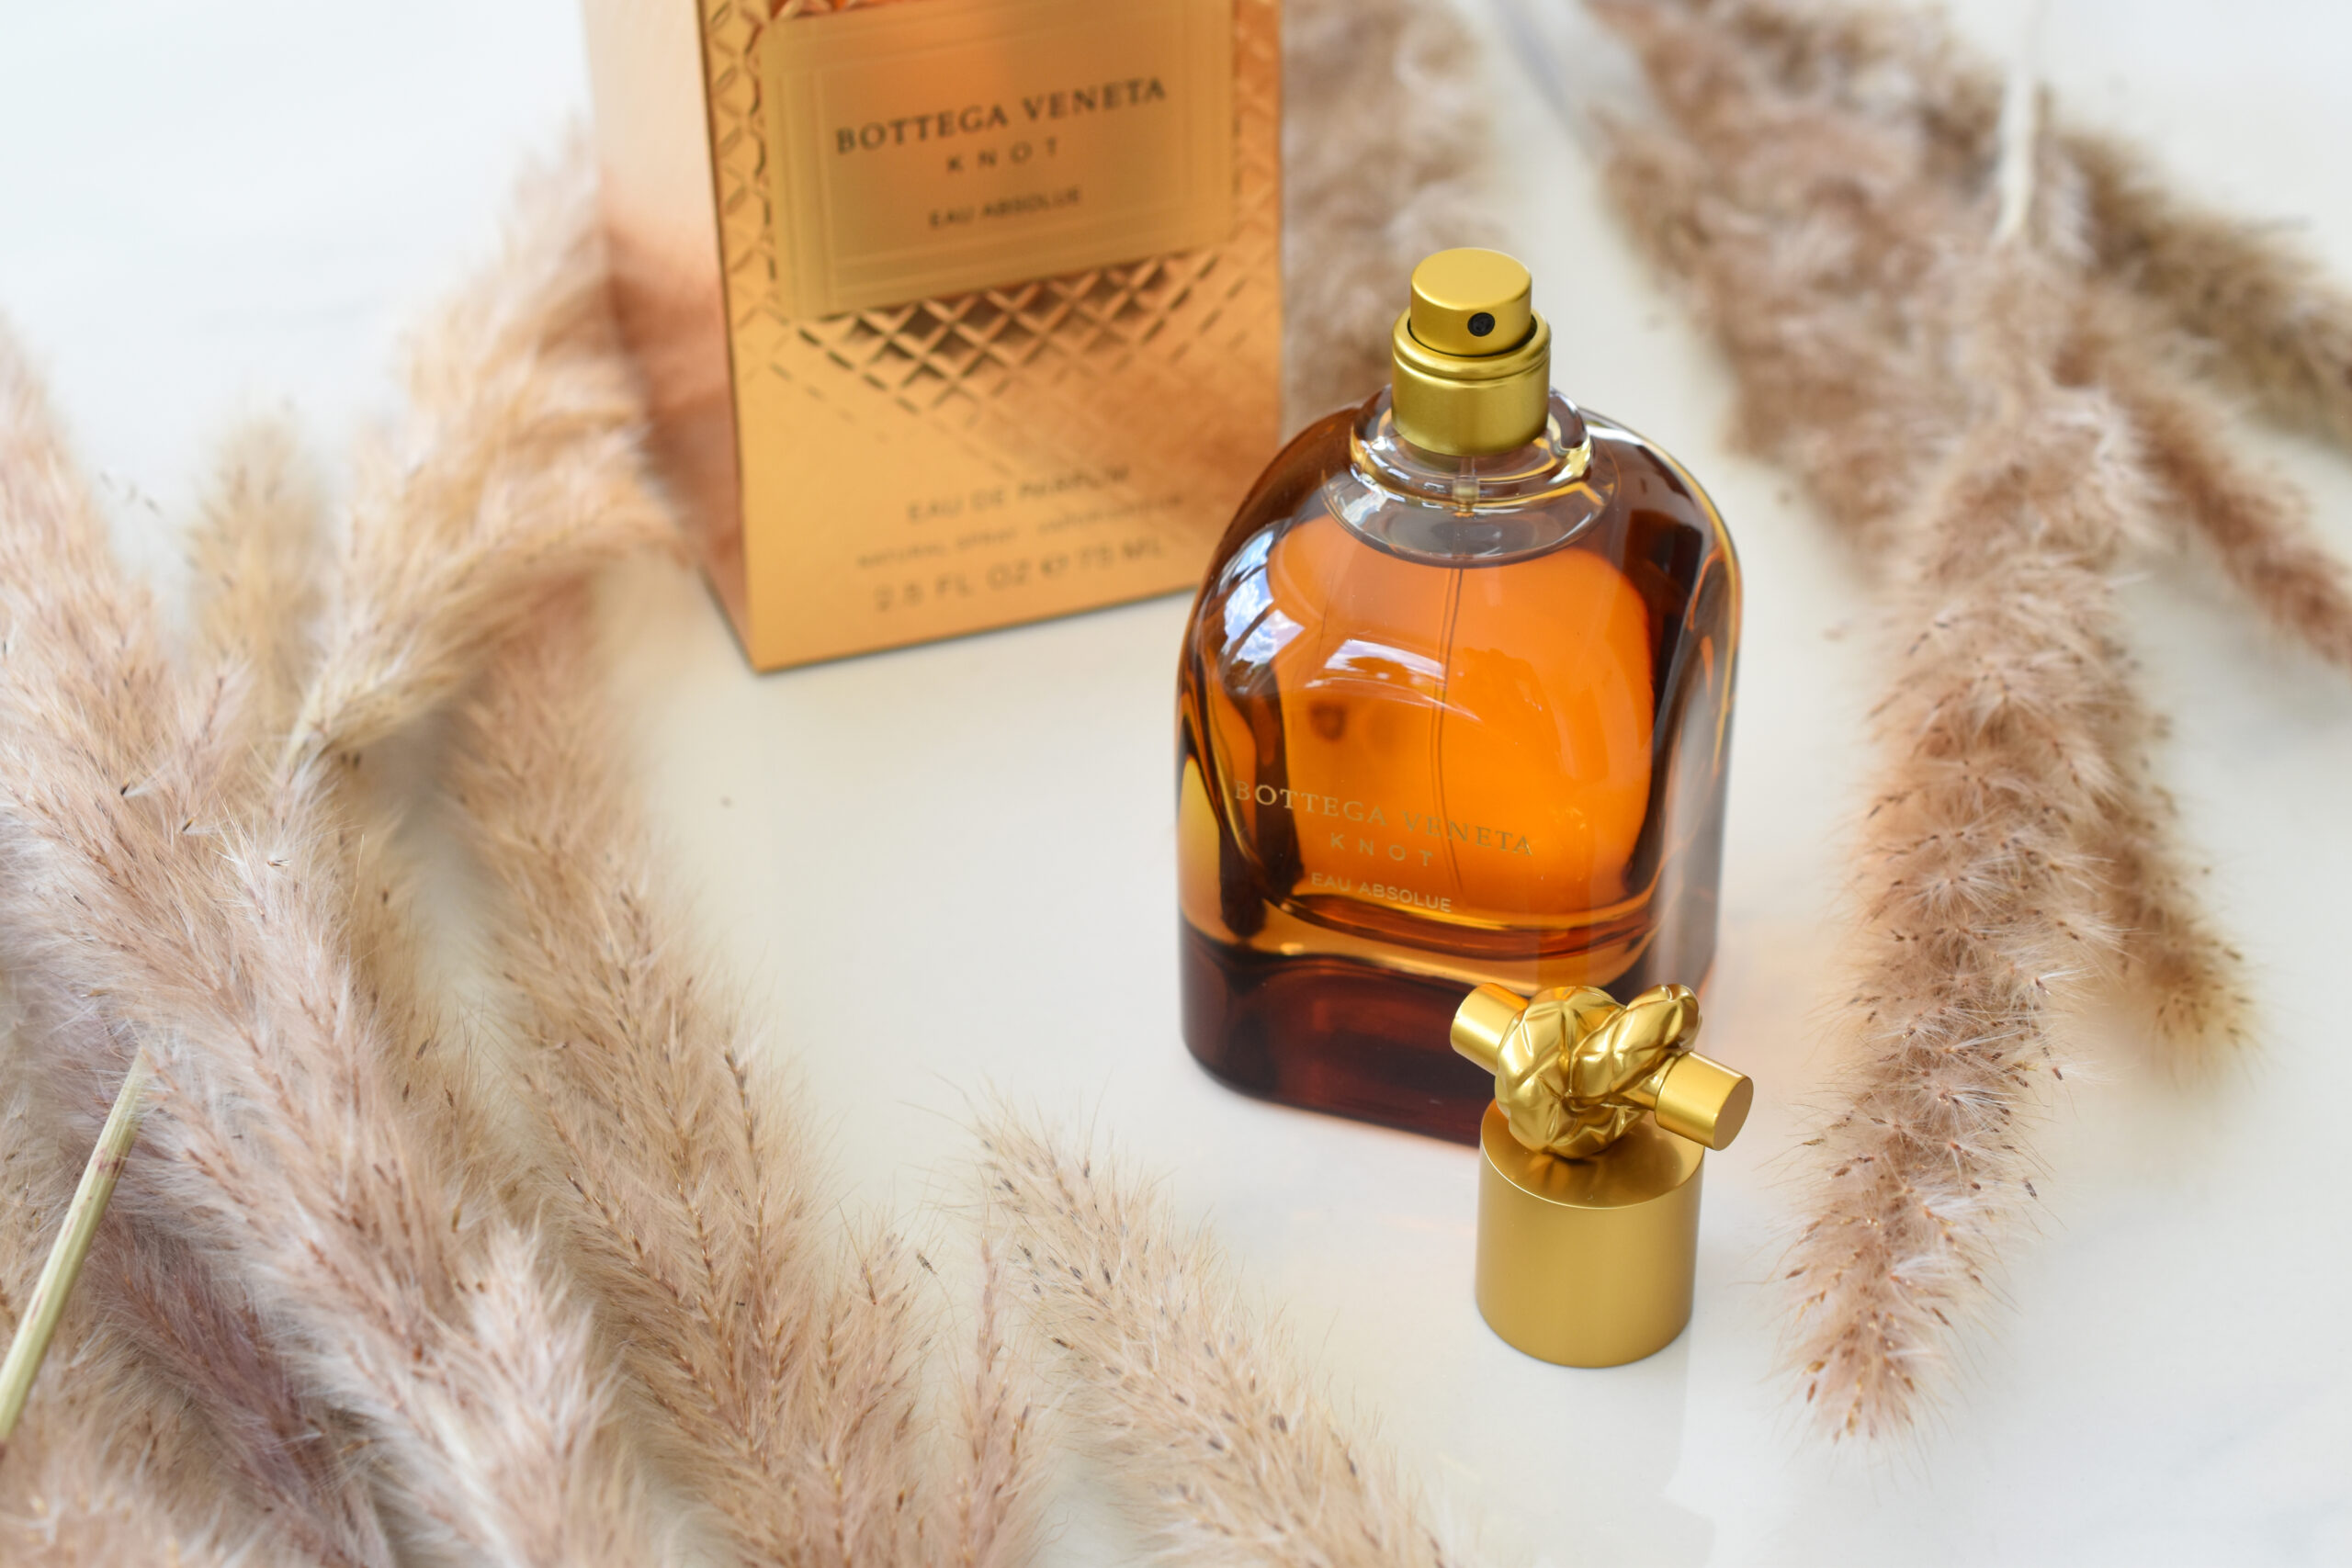 Bottega Veneta Knot Eau Absolue Duft